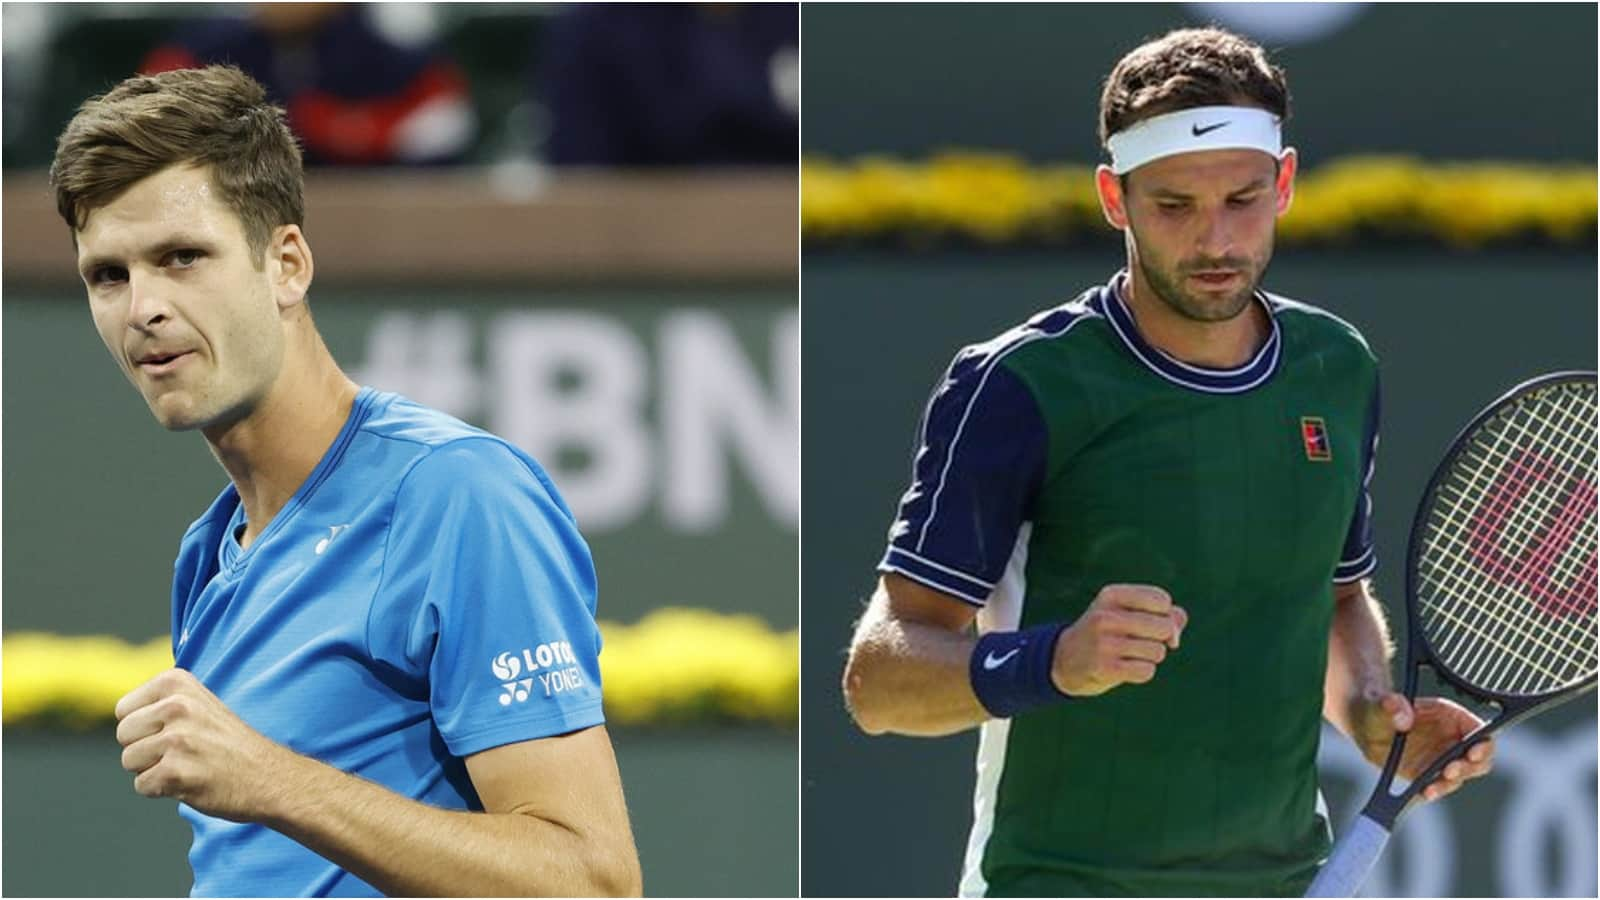 Indian Wells Masters 2021: Hubert Hurkacz vs Grigor Dimitrov Preview, Head  to Head, Prediction and Live Stream for BNP Paribas Open » FirstSportz